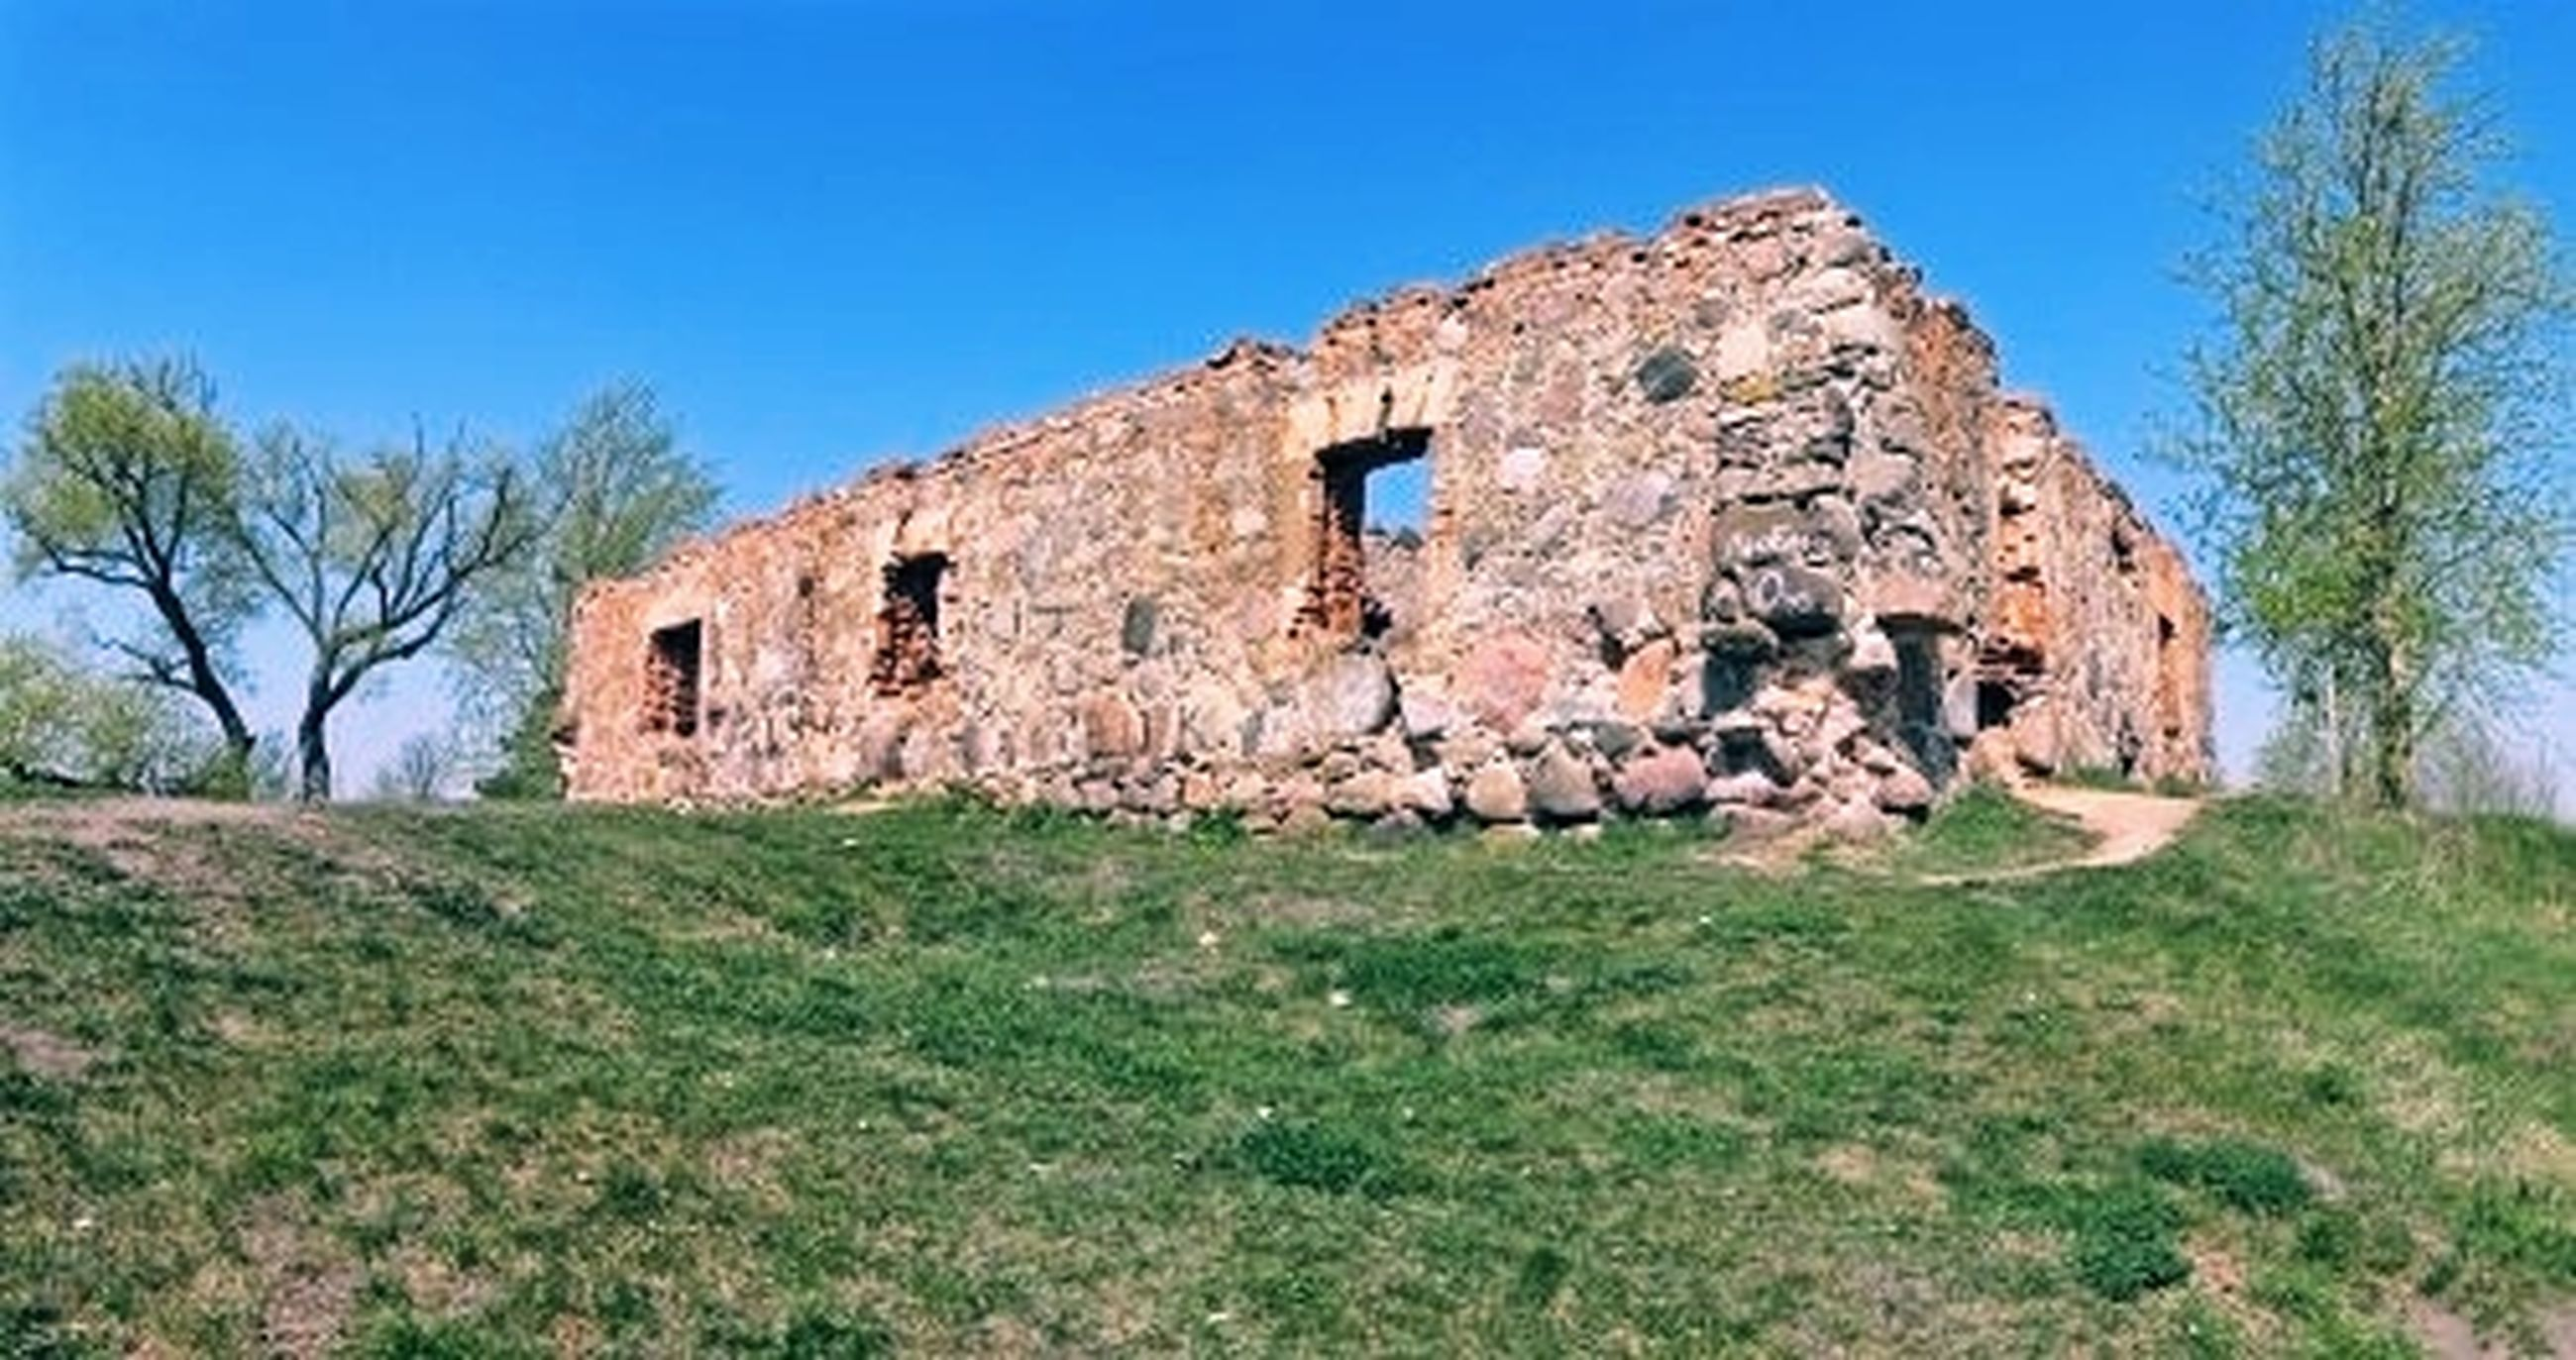 architecture, plant, sky, history, nature, ruins, the past, grass, built structure, land, old ruin, landscape, tree, clear sky, blue, no people, abandoned, old, building, building exterior, ancient, travel destinations, ruined, damaged, scenics - nature, fortification, day, field, outdoors, travel, wall, environment, house, rural scene, non-urban scene, rundown, ancient history, stone material, village, weathered, green, rural area, tranquility, rock, tourism, bad condition, sunny